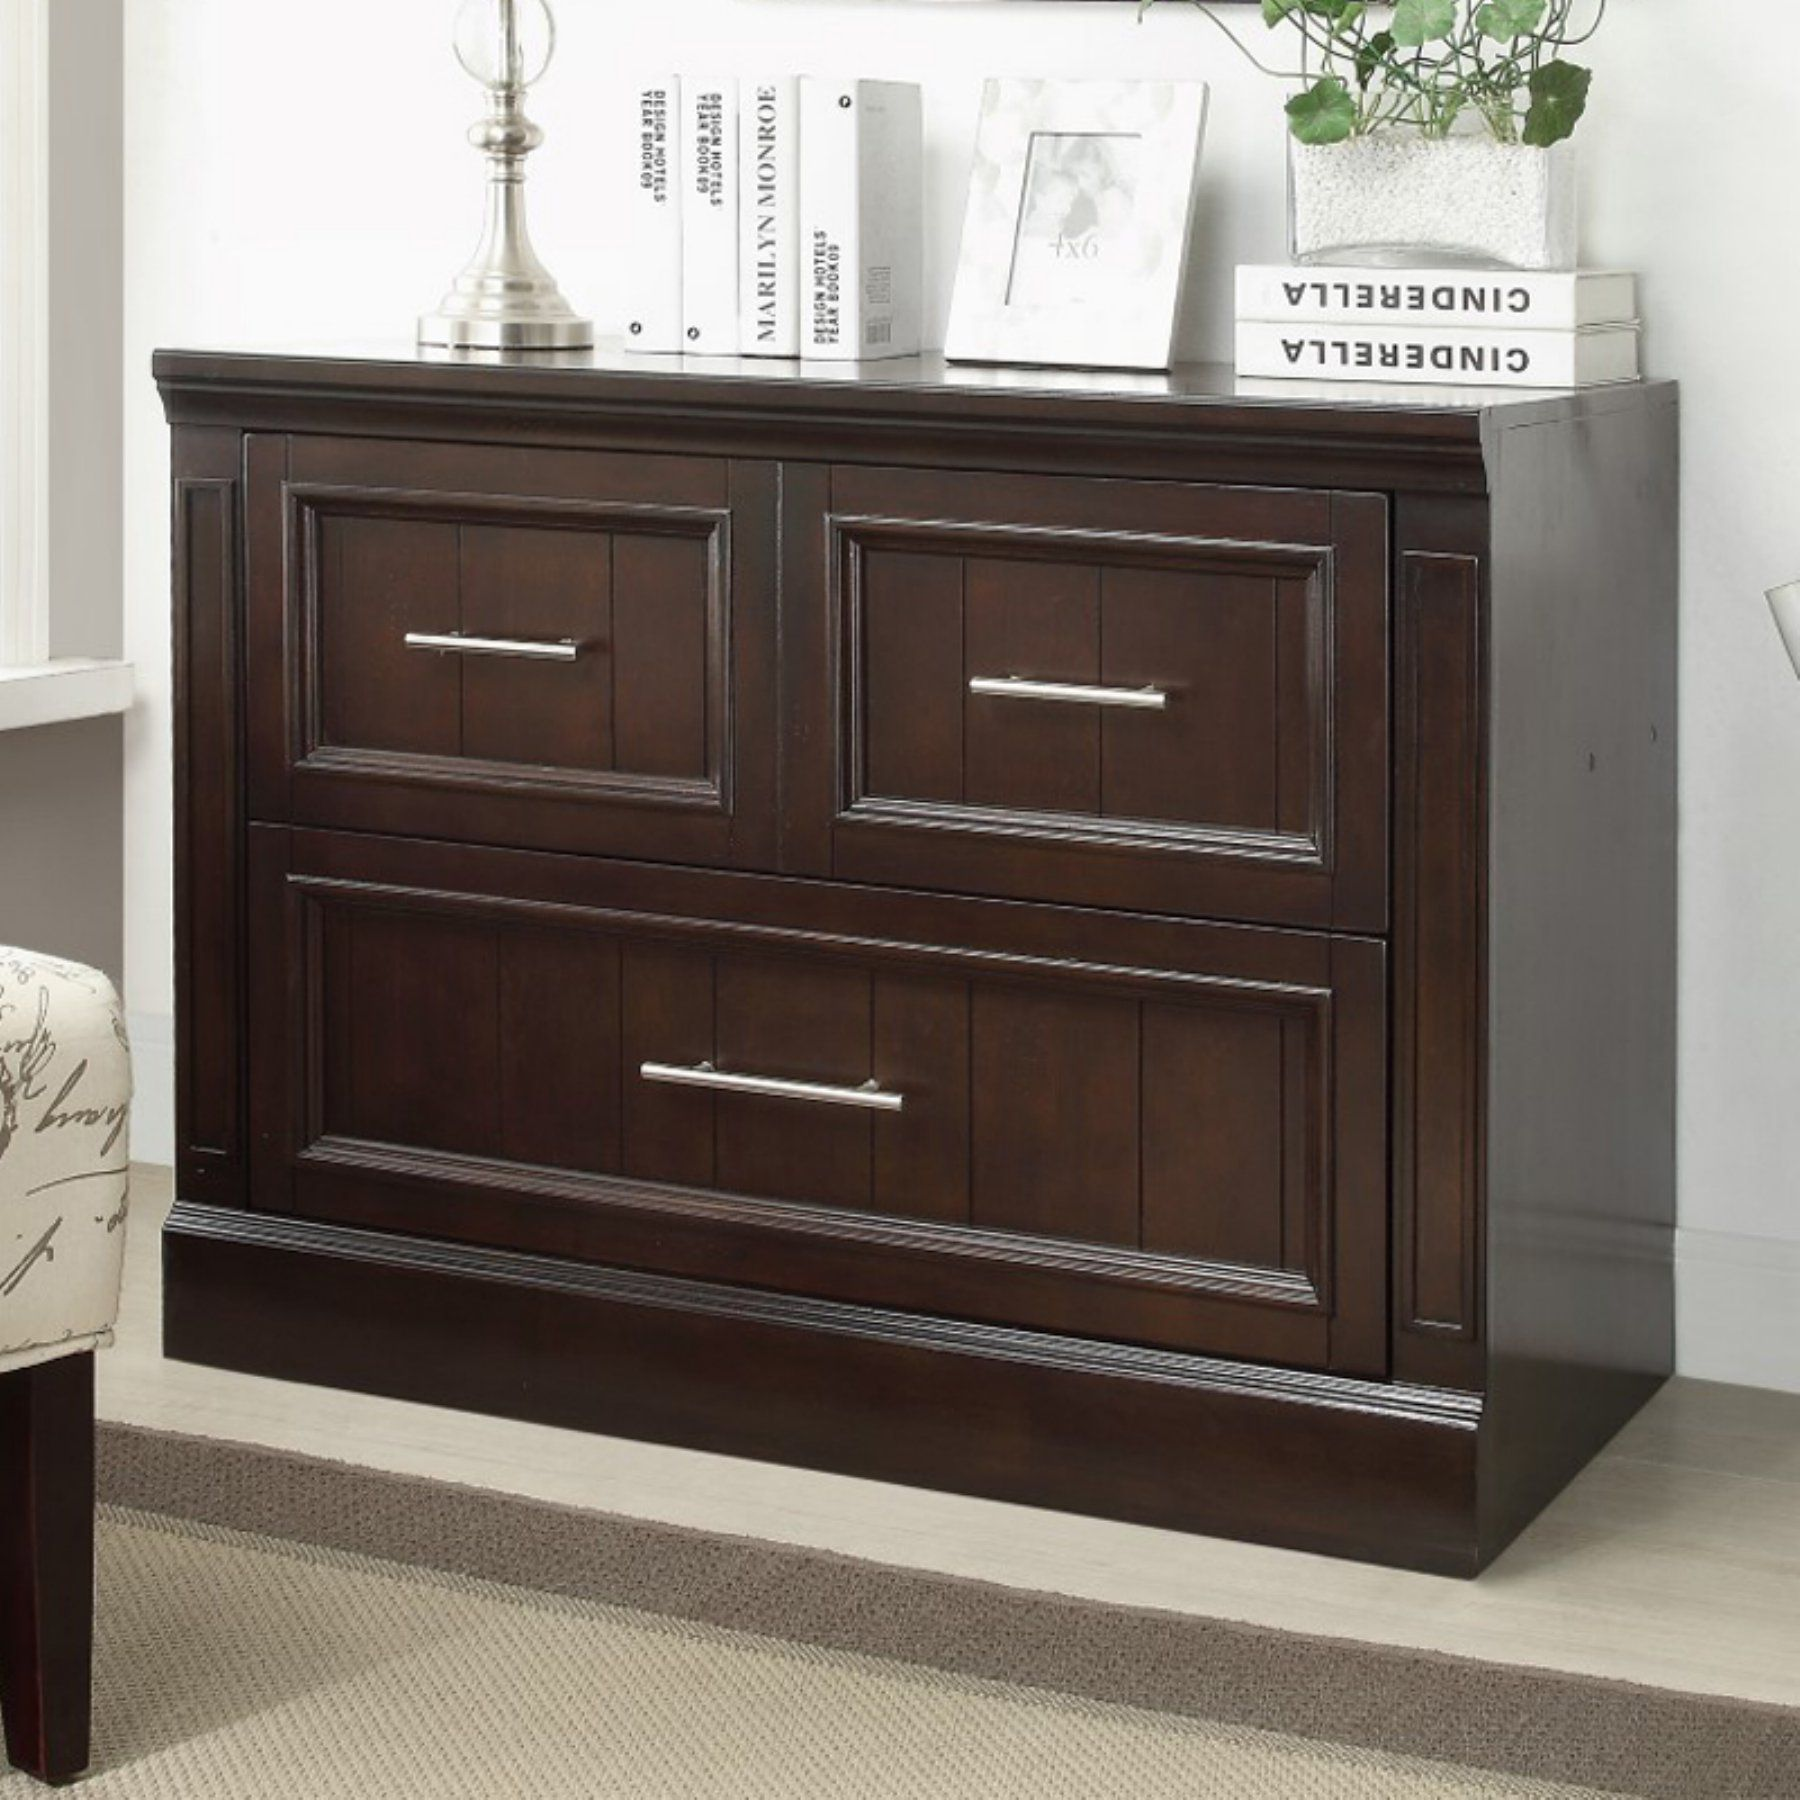 Parker House Stanford Library 2 Drawer Lateral File Cabinet STA